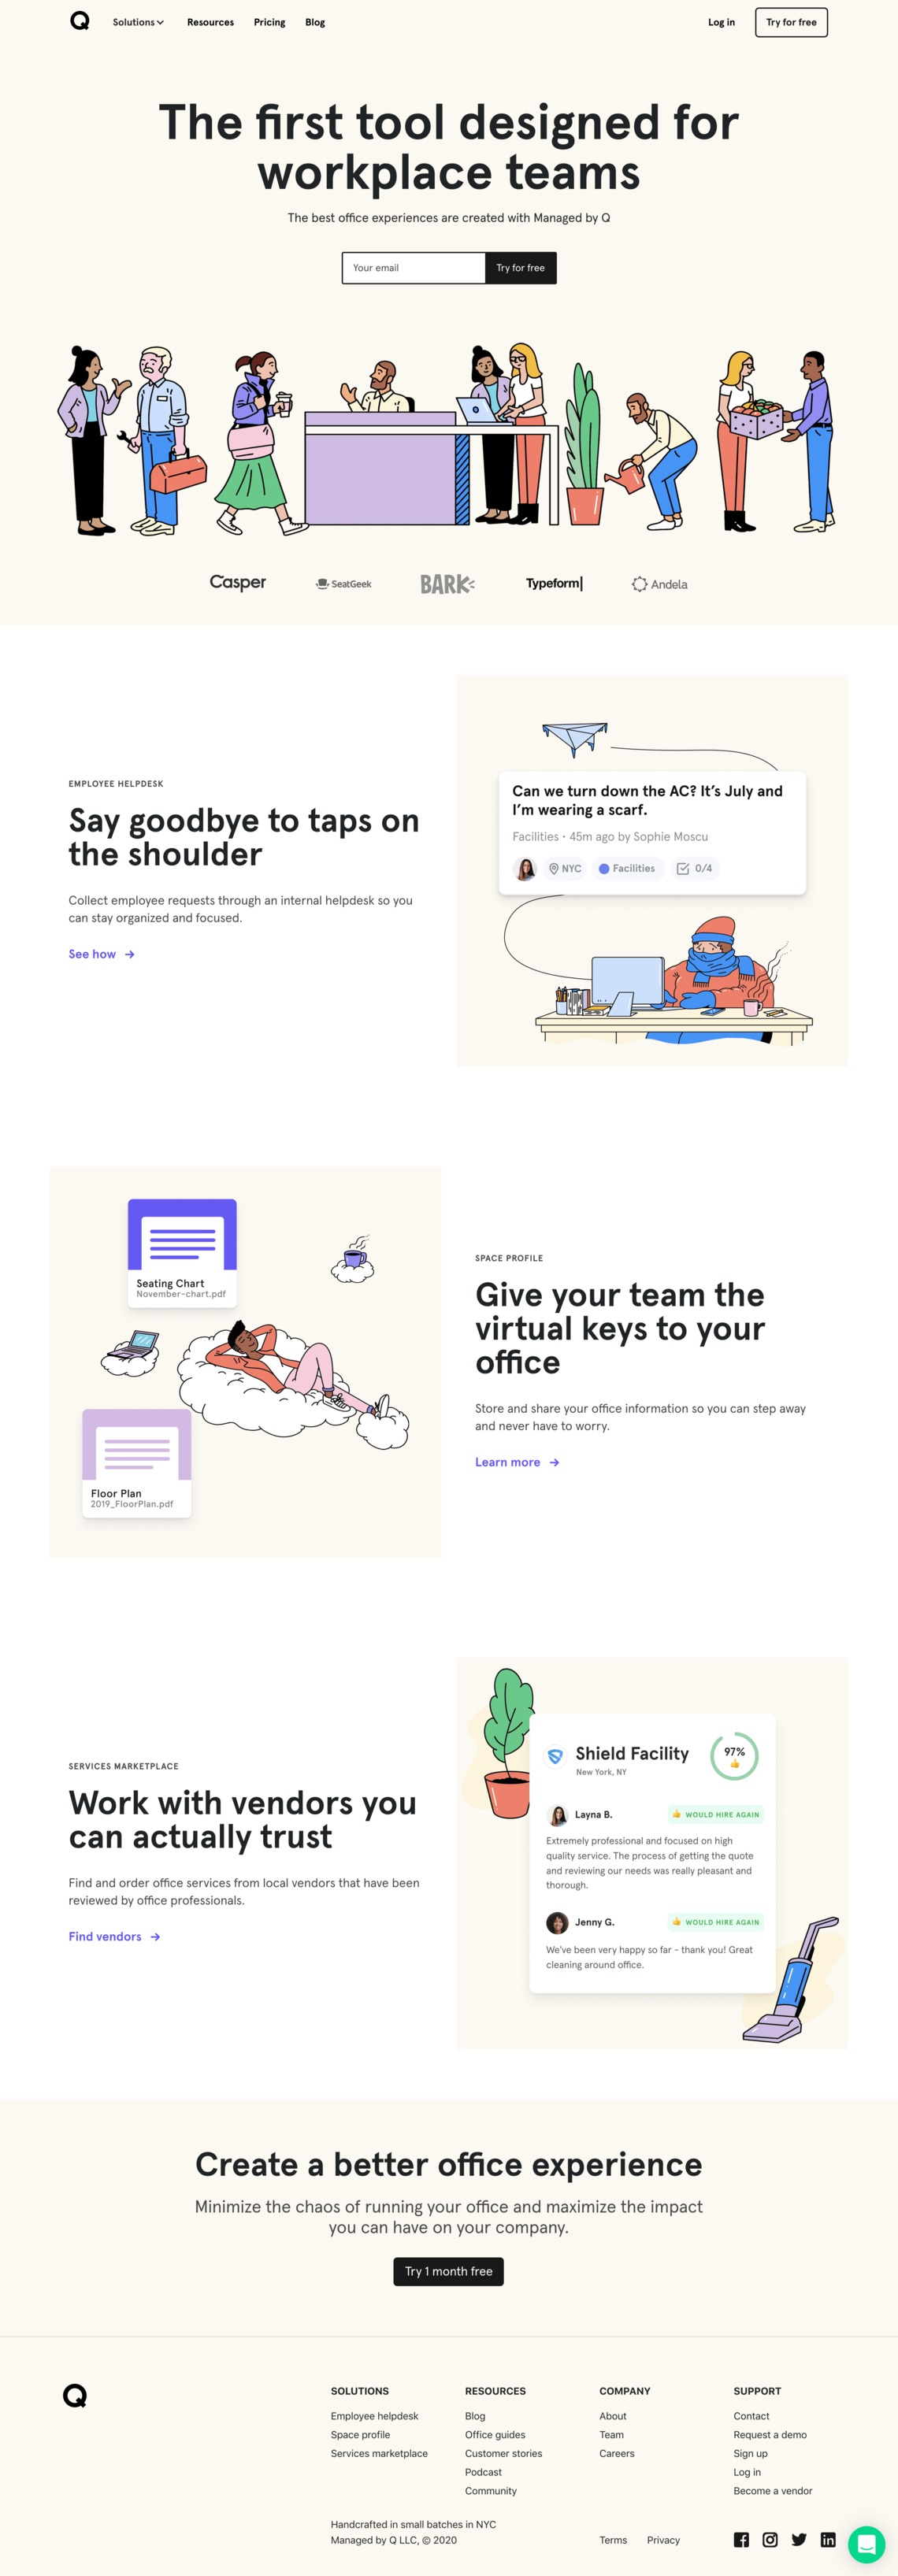 Managed by Q | The first tool designed for workplace teams